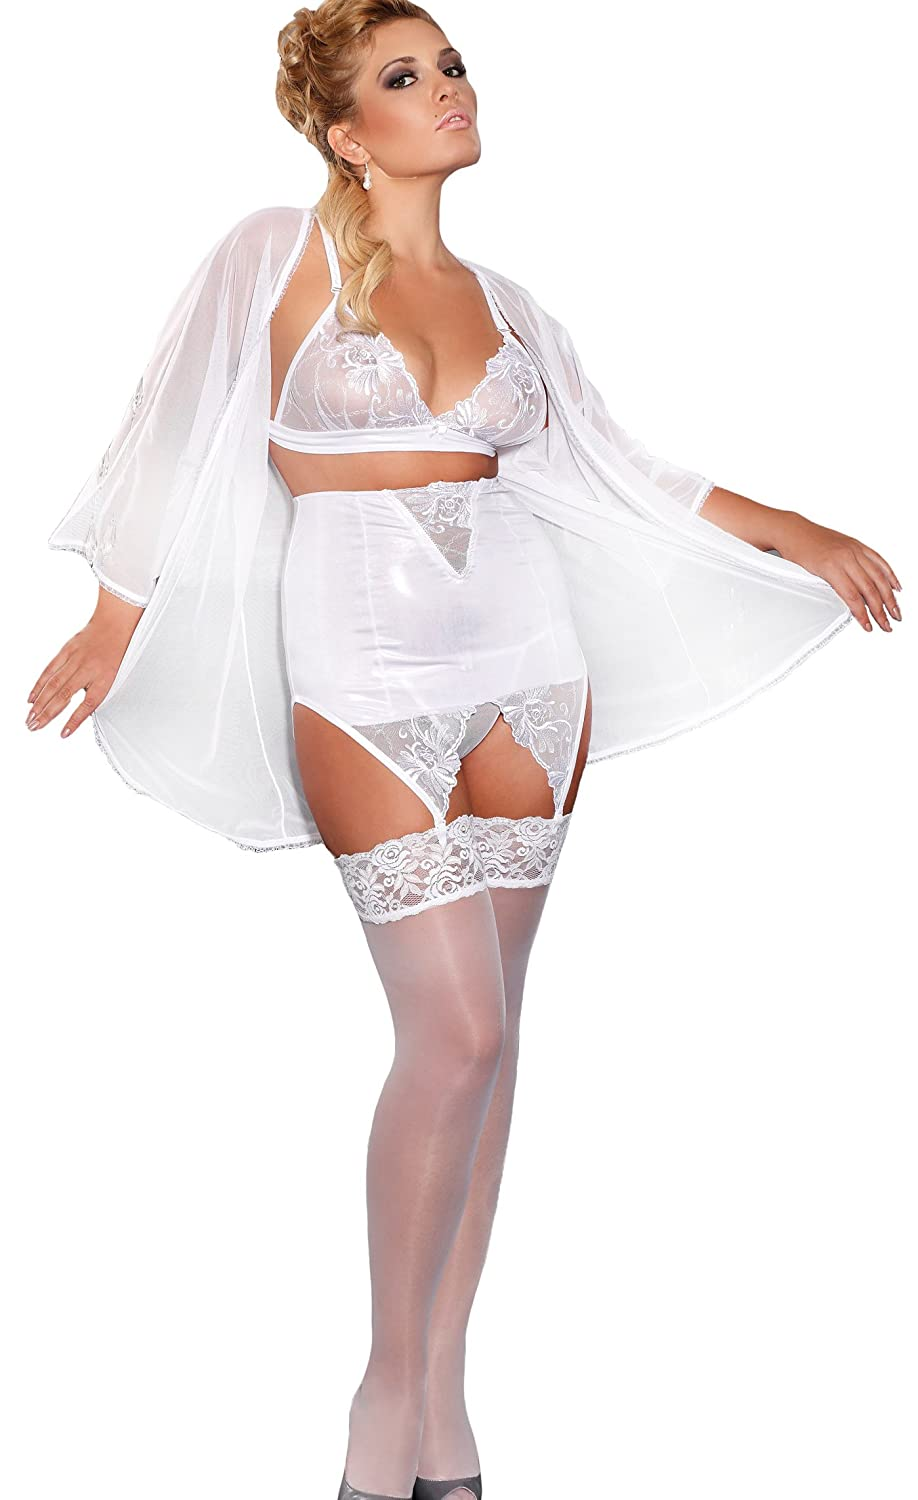 Exclusive 4pcs White Dream Plus Size (3XL-6XL) Lingerie Set BNIB